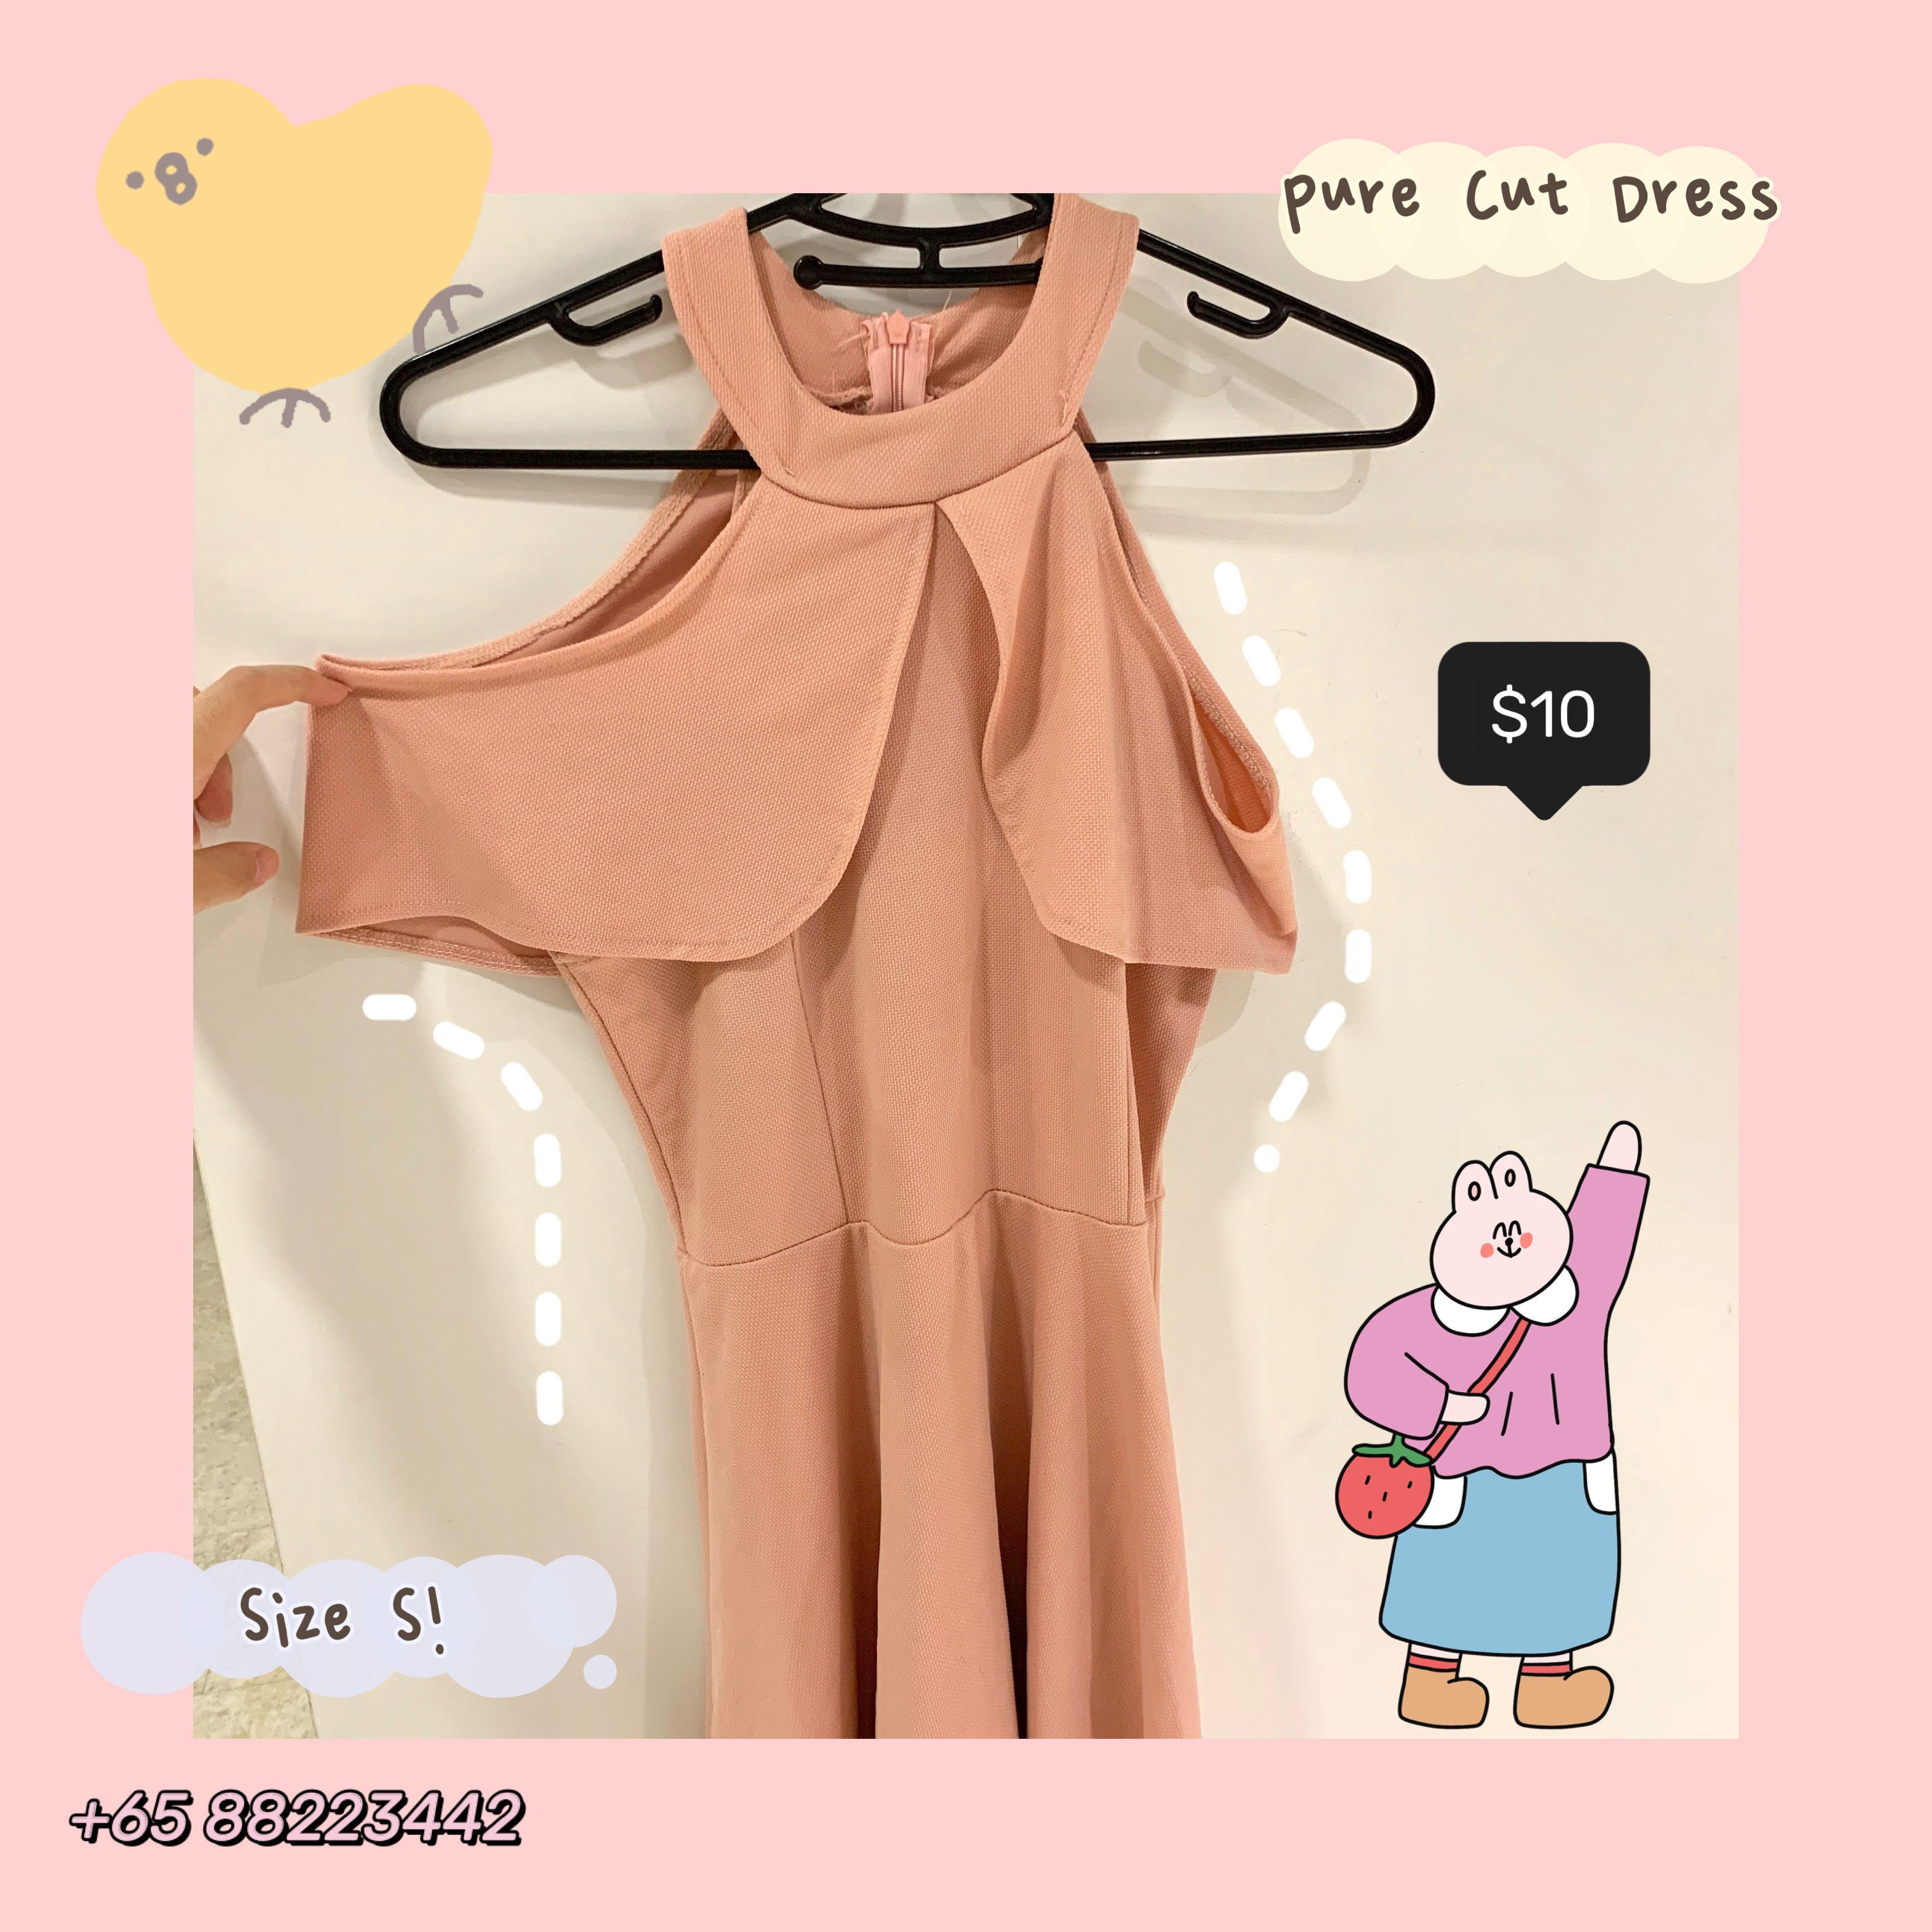 Sojudeul Closet Preowned Soft Peach Slit Collar Dress Cute Women S Fashion Clothes Dresses Skirts On Carousell